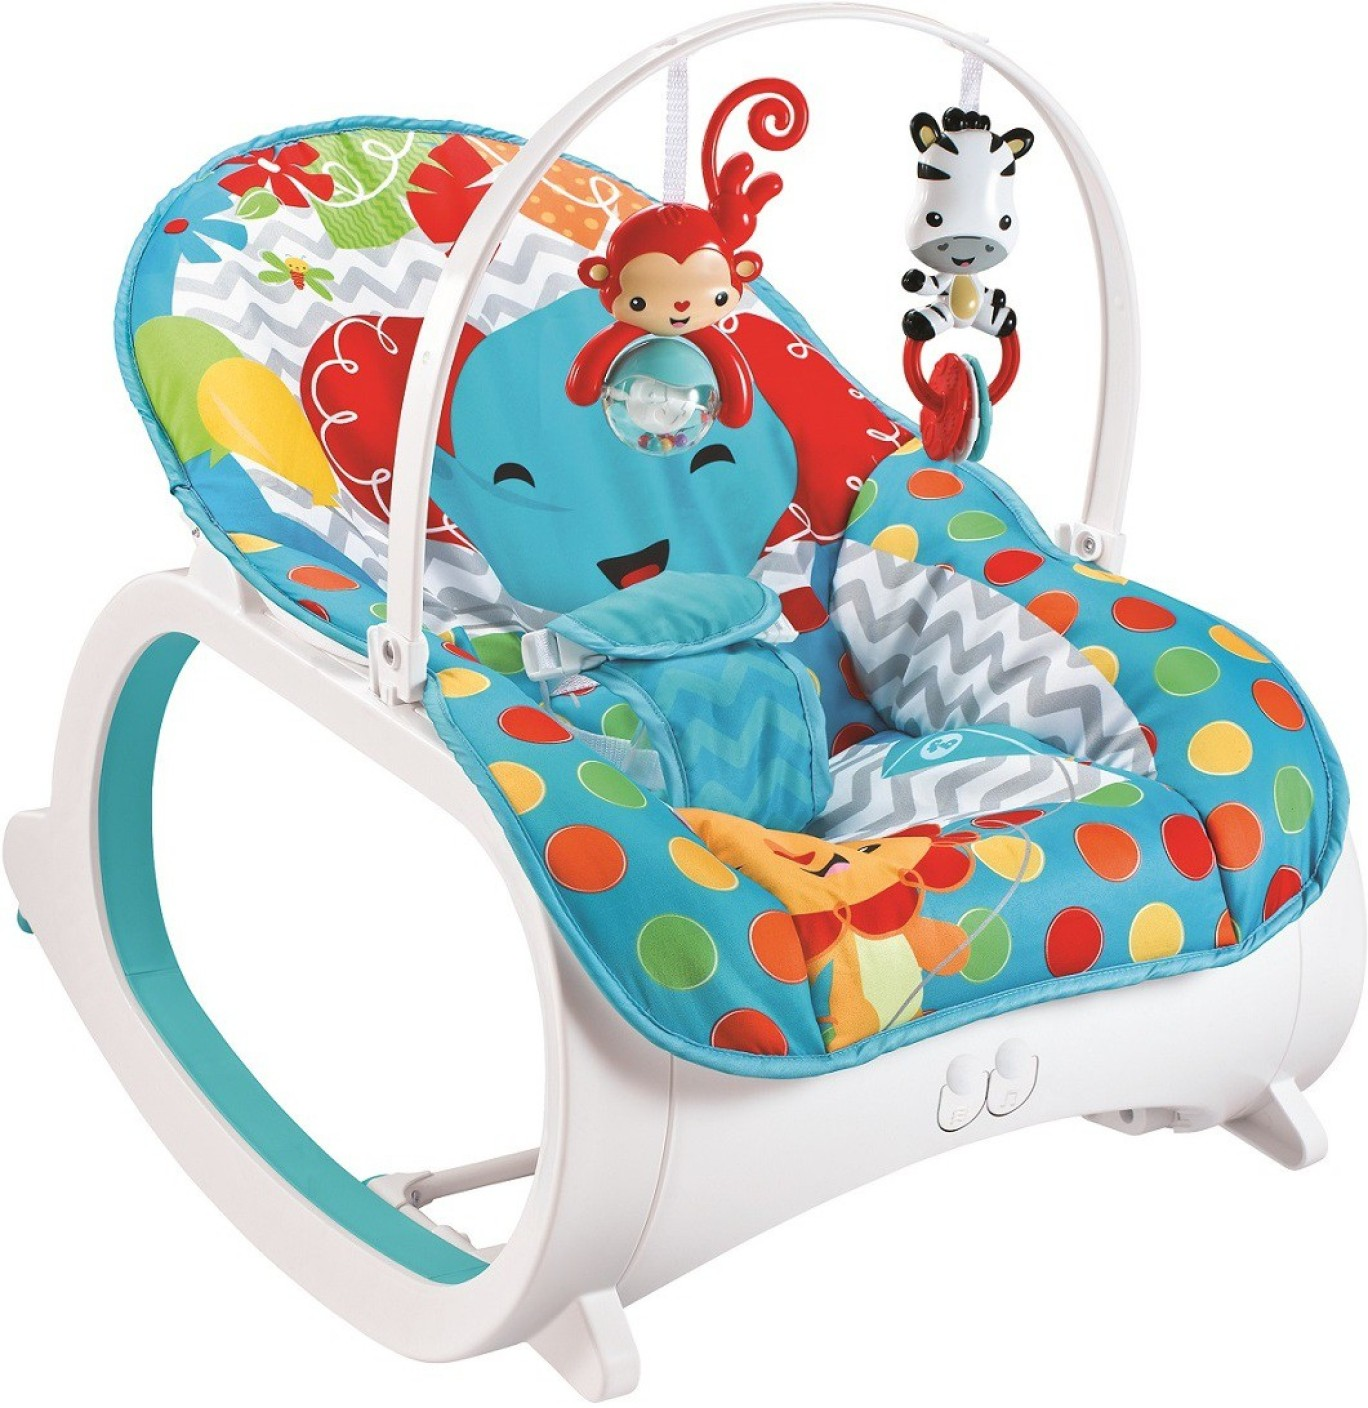 Fiddle Diddle Baby Bouncer Cum Rocker with Vibration Function